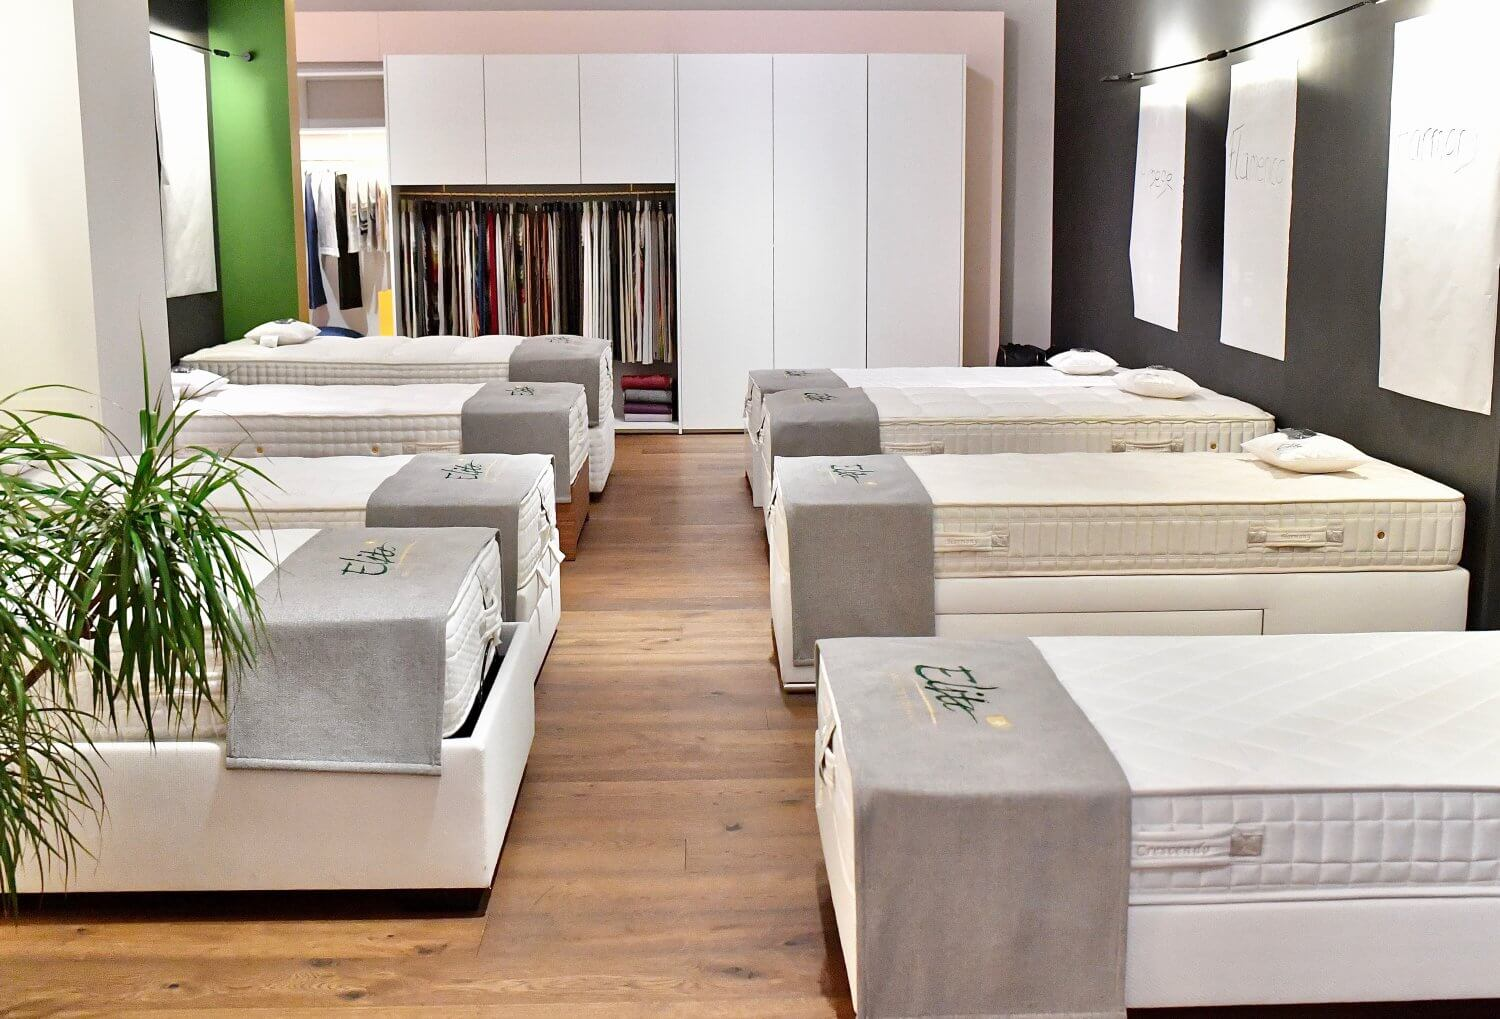 How to Discover the Perfect Mattress for You